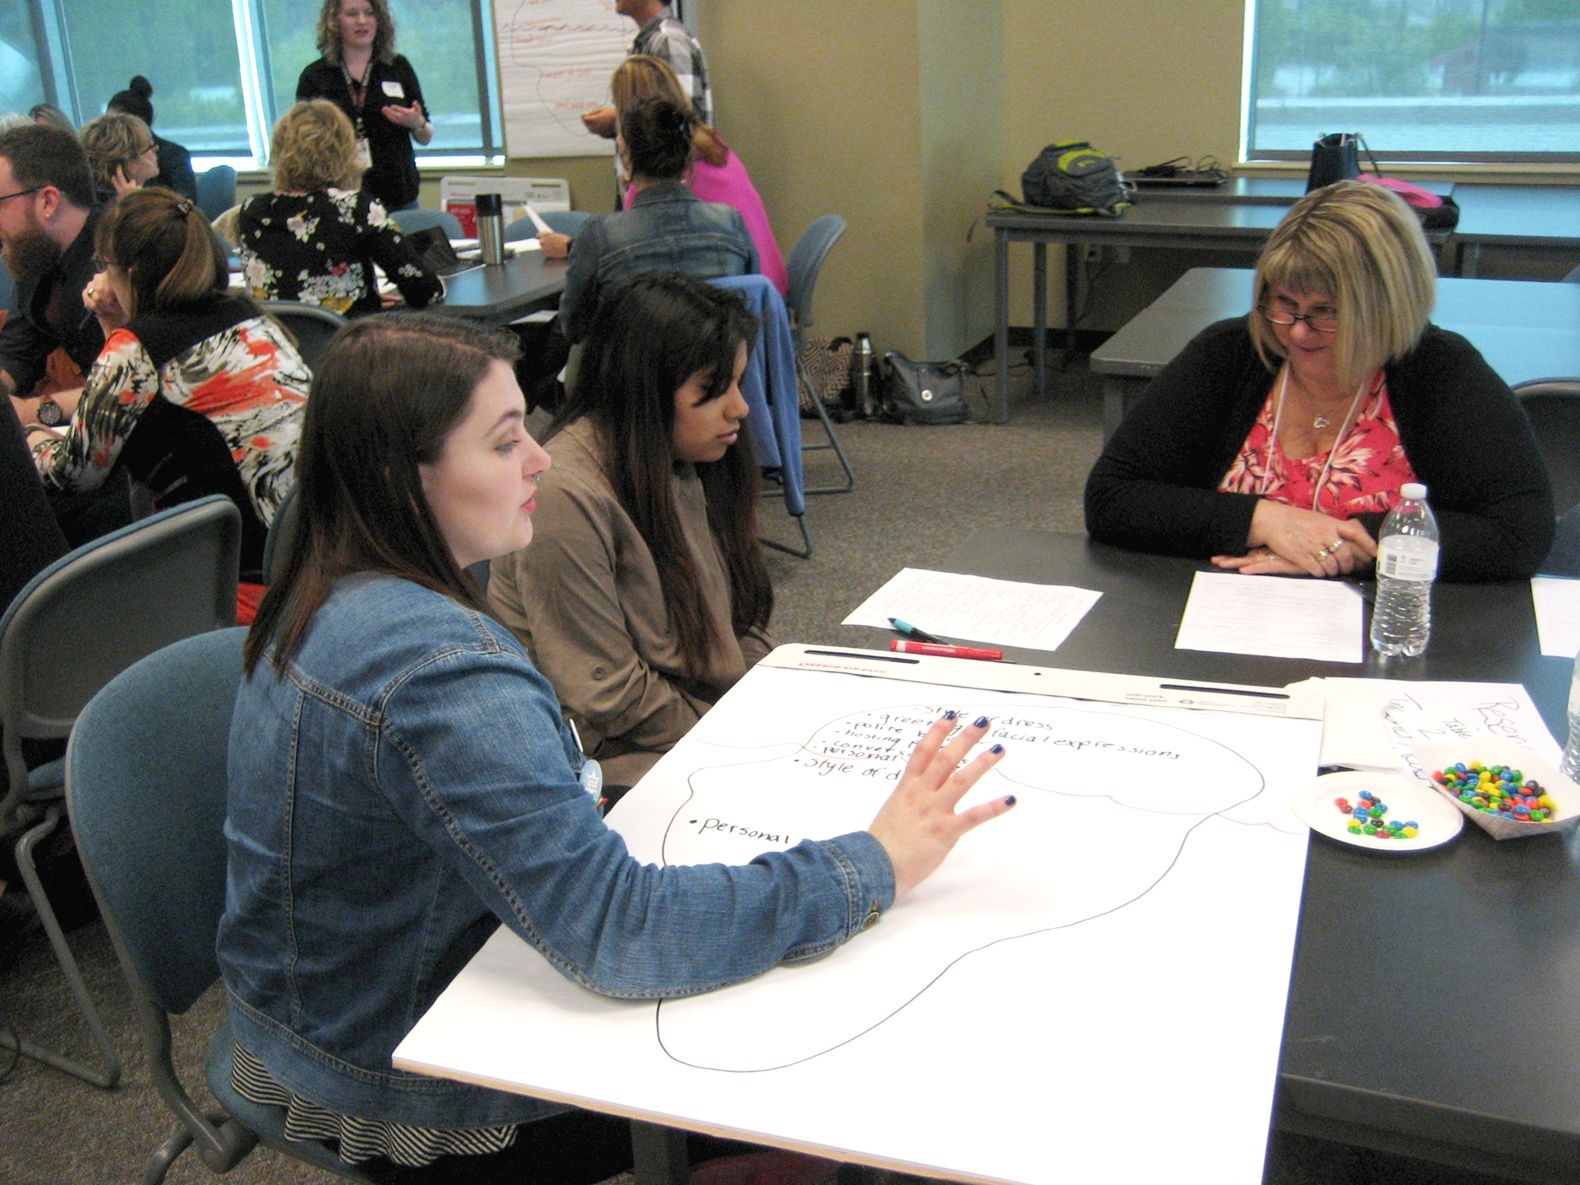 High school students from the Recruiting Washington Teachers program consult with a teacher on a project.